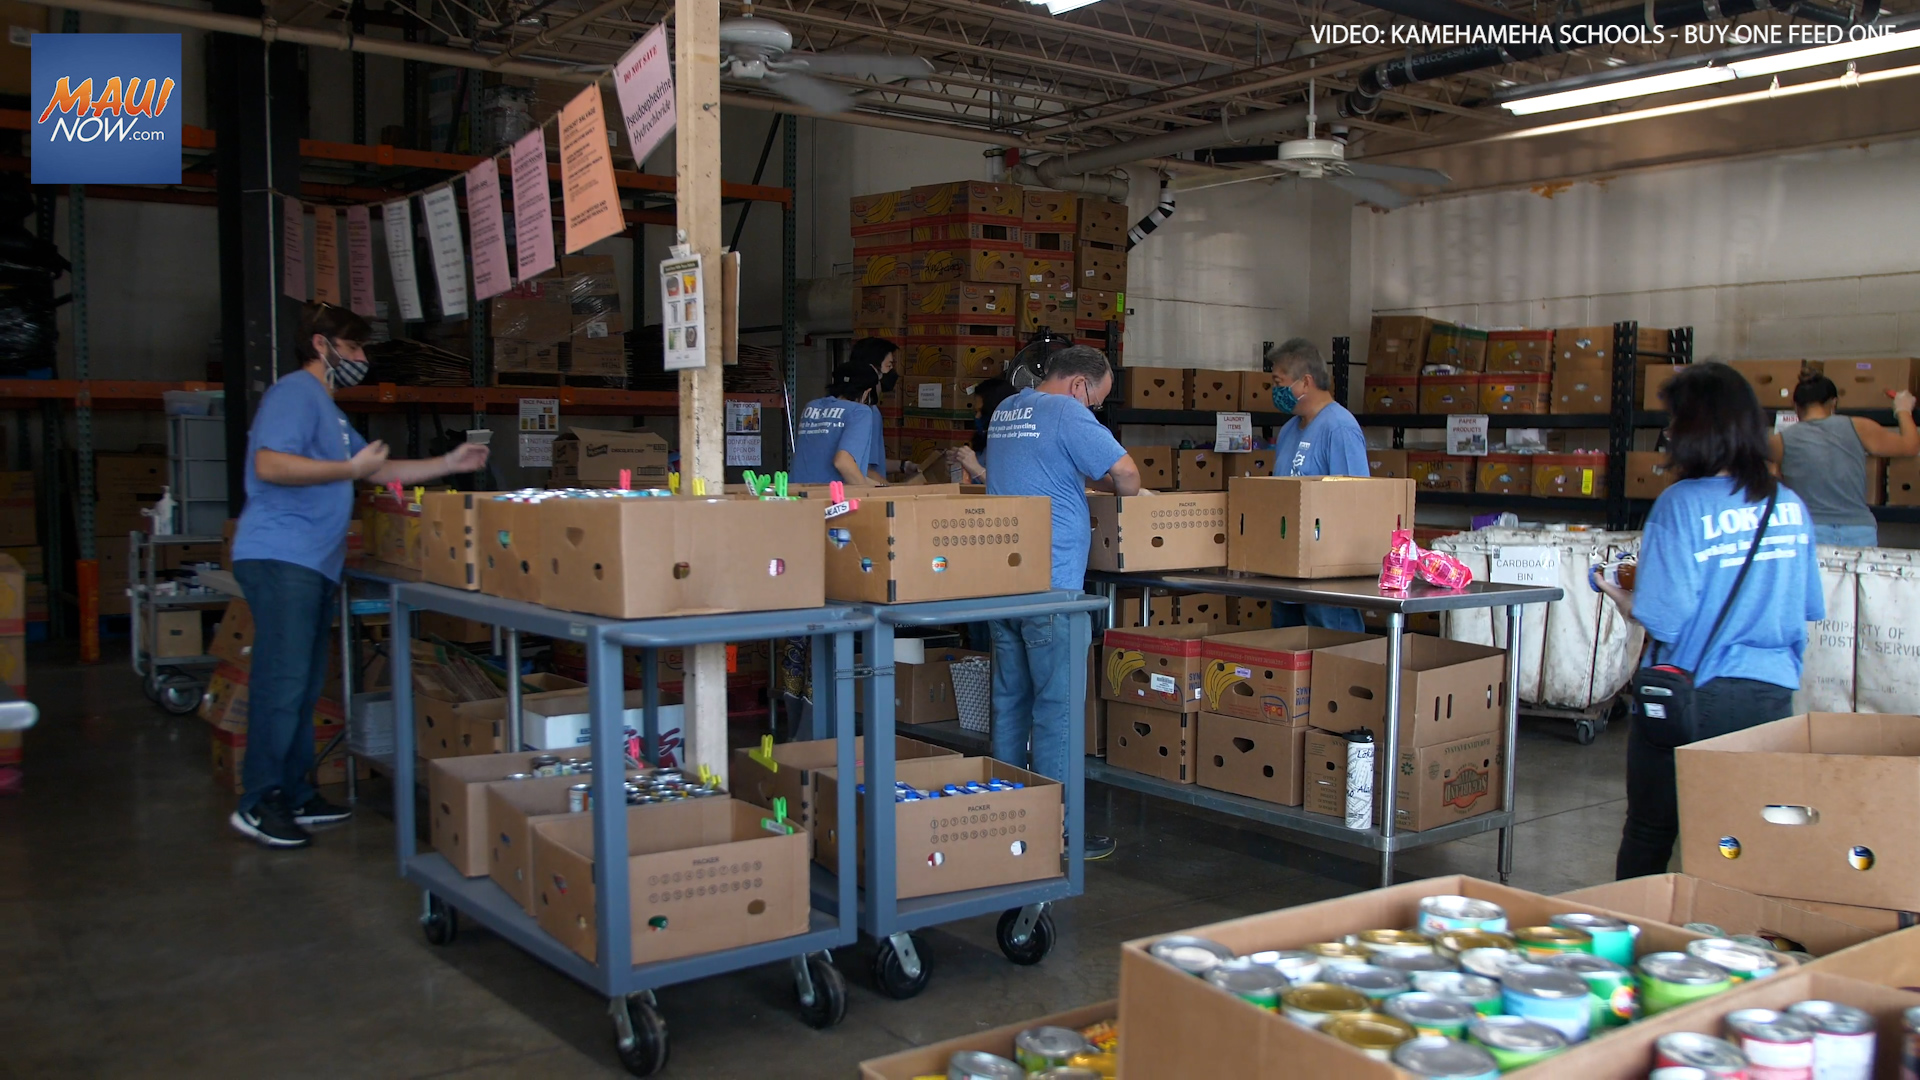 Kamehameha Schools' Buy One, Feed One Campaign Donates $40,000 to the Hawaiʻi Foodbank